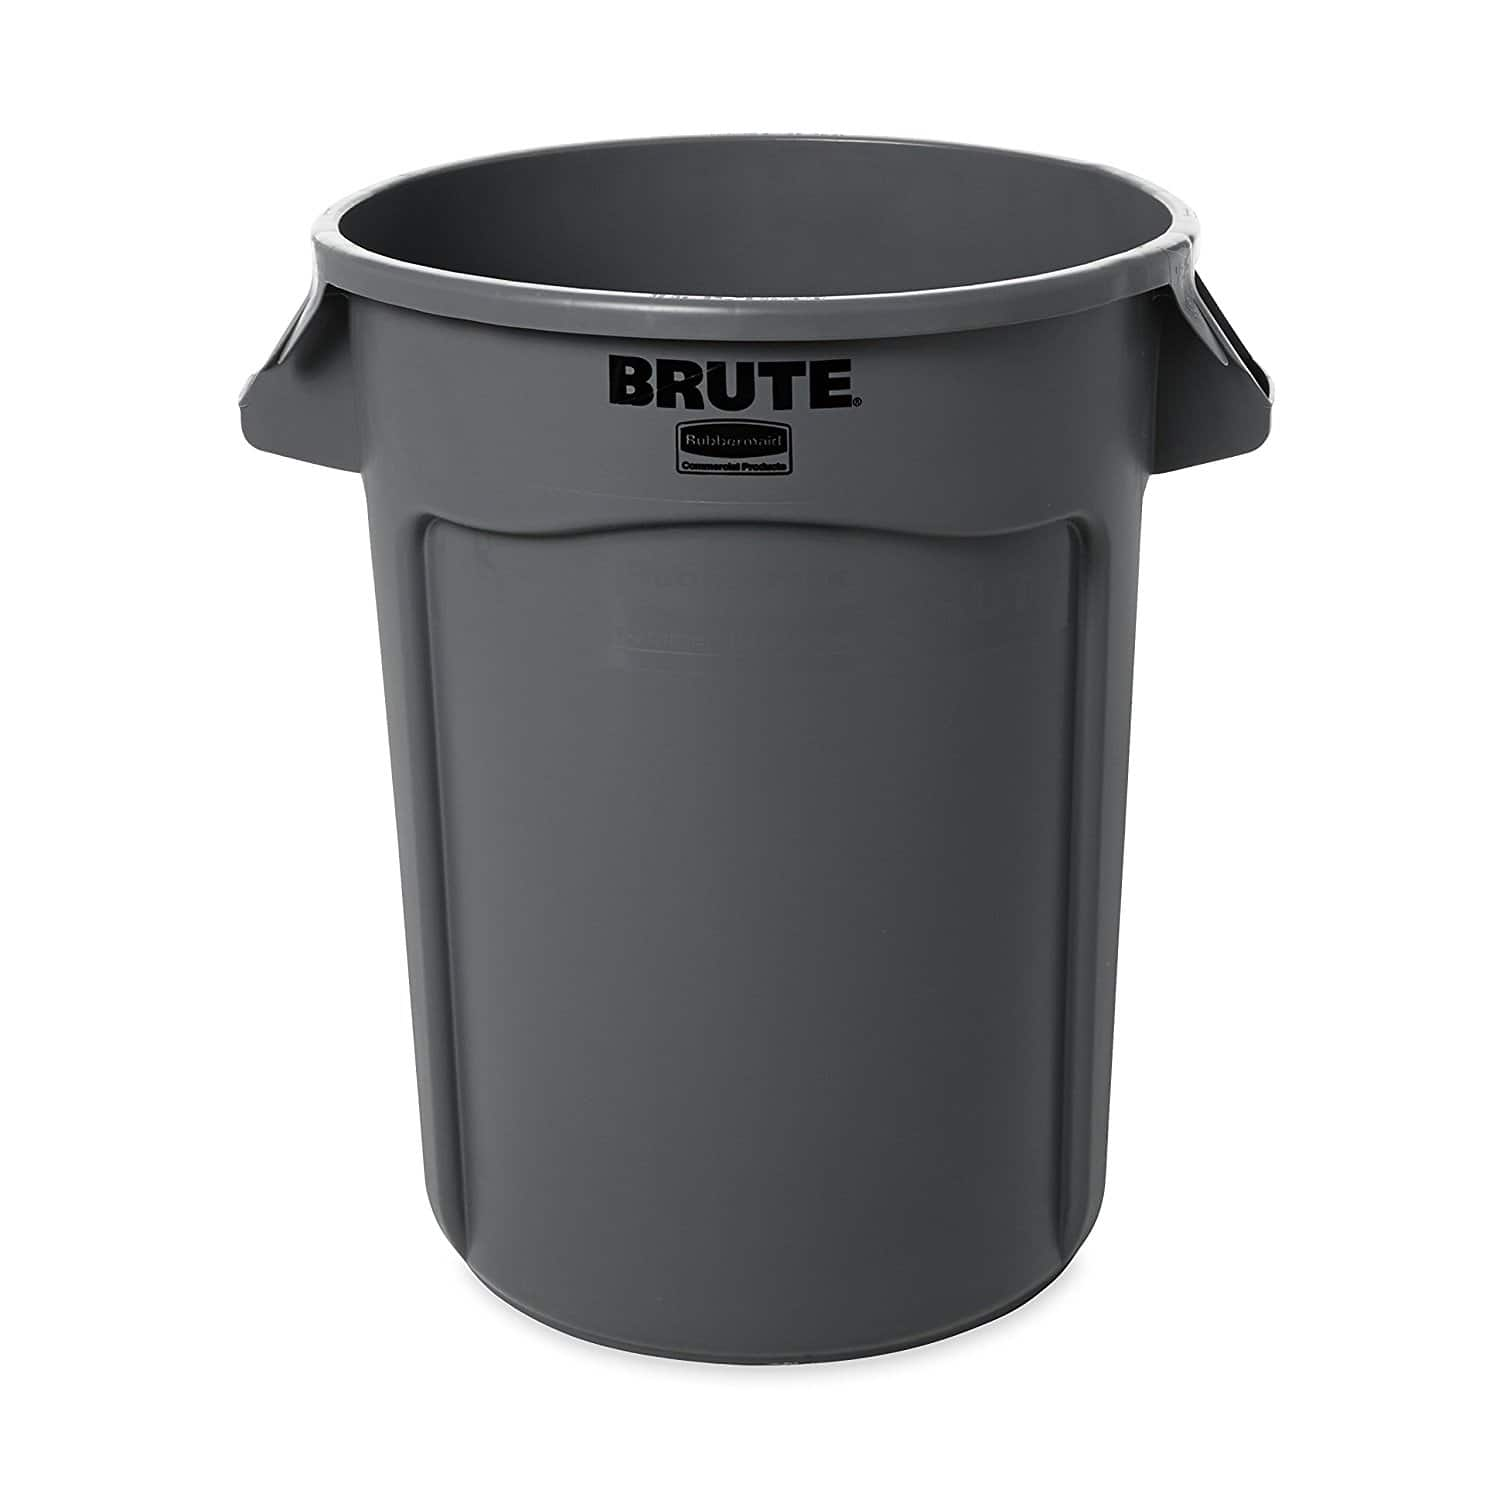 Amazon Rubbermaid Brute 32 gallon Trashcan $13 $23 with lid $66